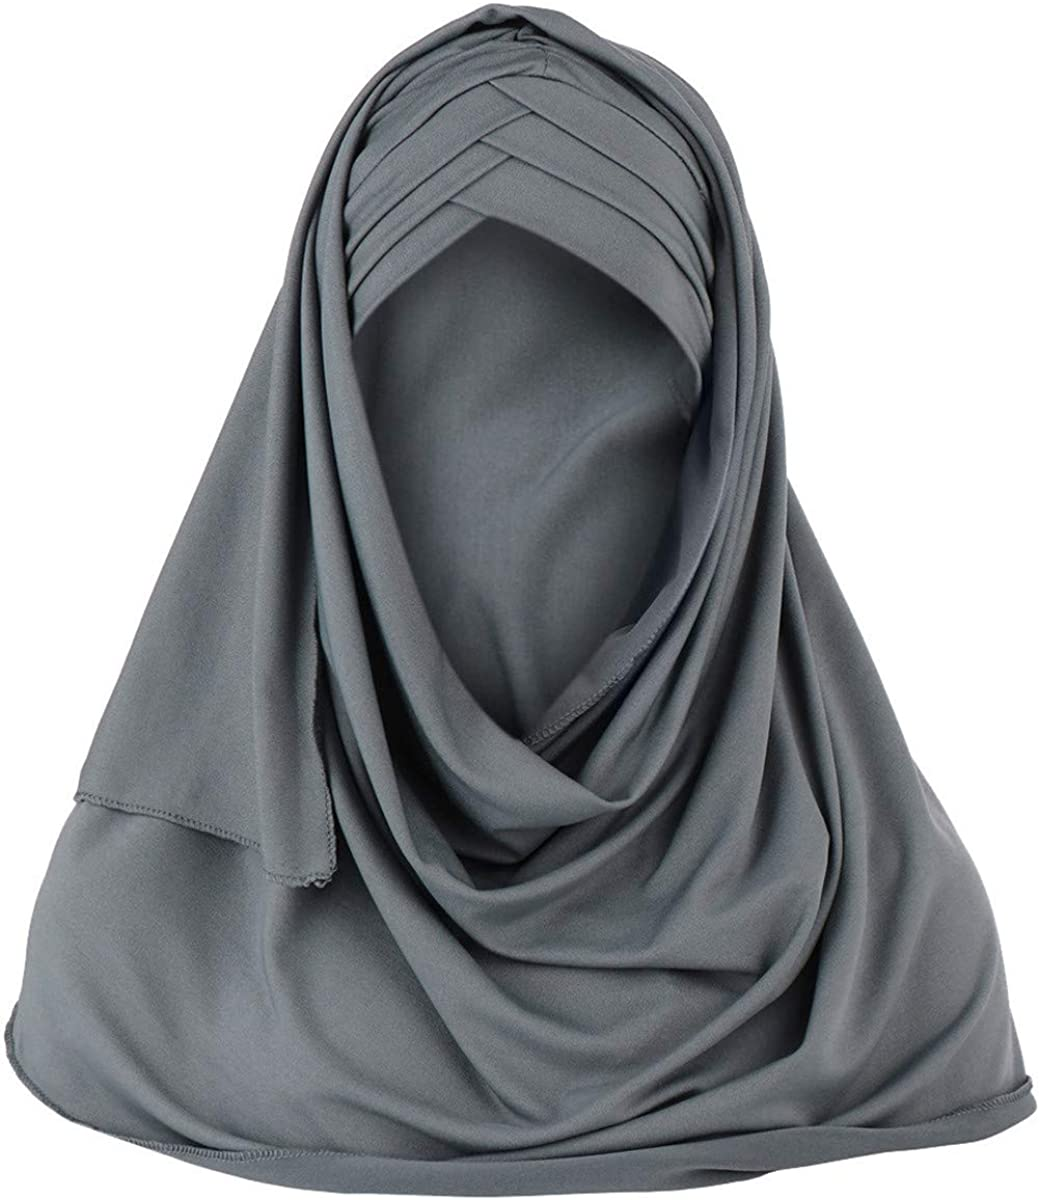 Thenxin Muslim Hijab For Women Solid Color Soft Turban Full Cover Headscarf